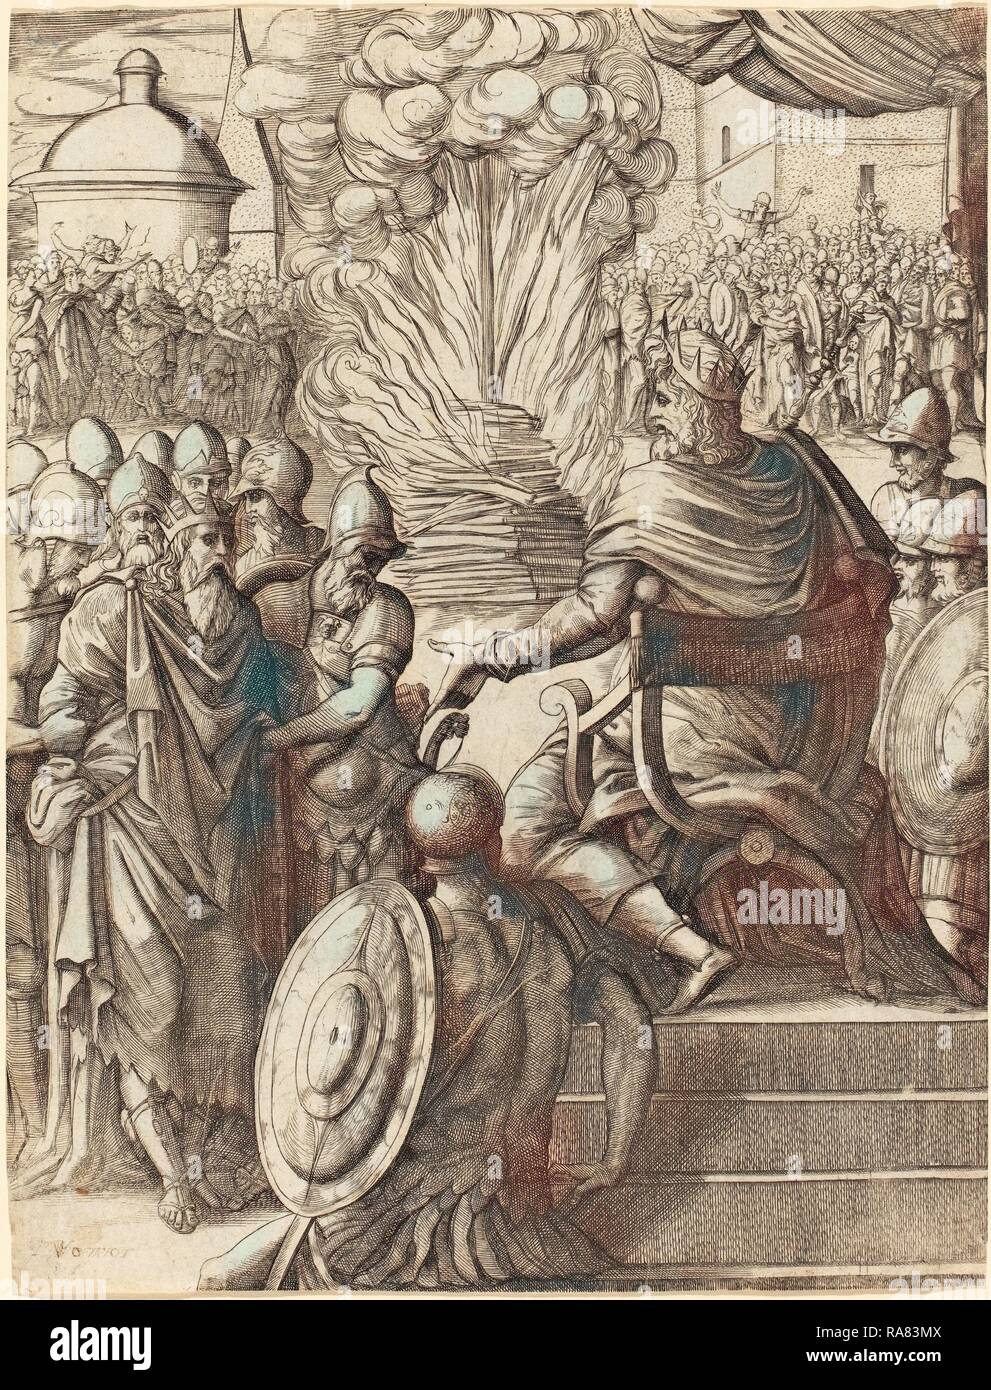 Pierre Woeiriot (French, 1532 - 1599), Heraclius Sentencing the Tyrant Phocas, engraving. Reimagined - Stock Image